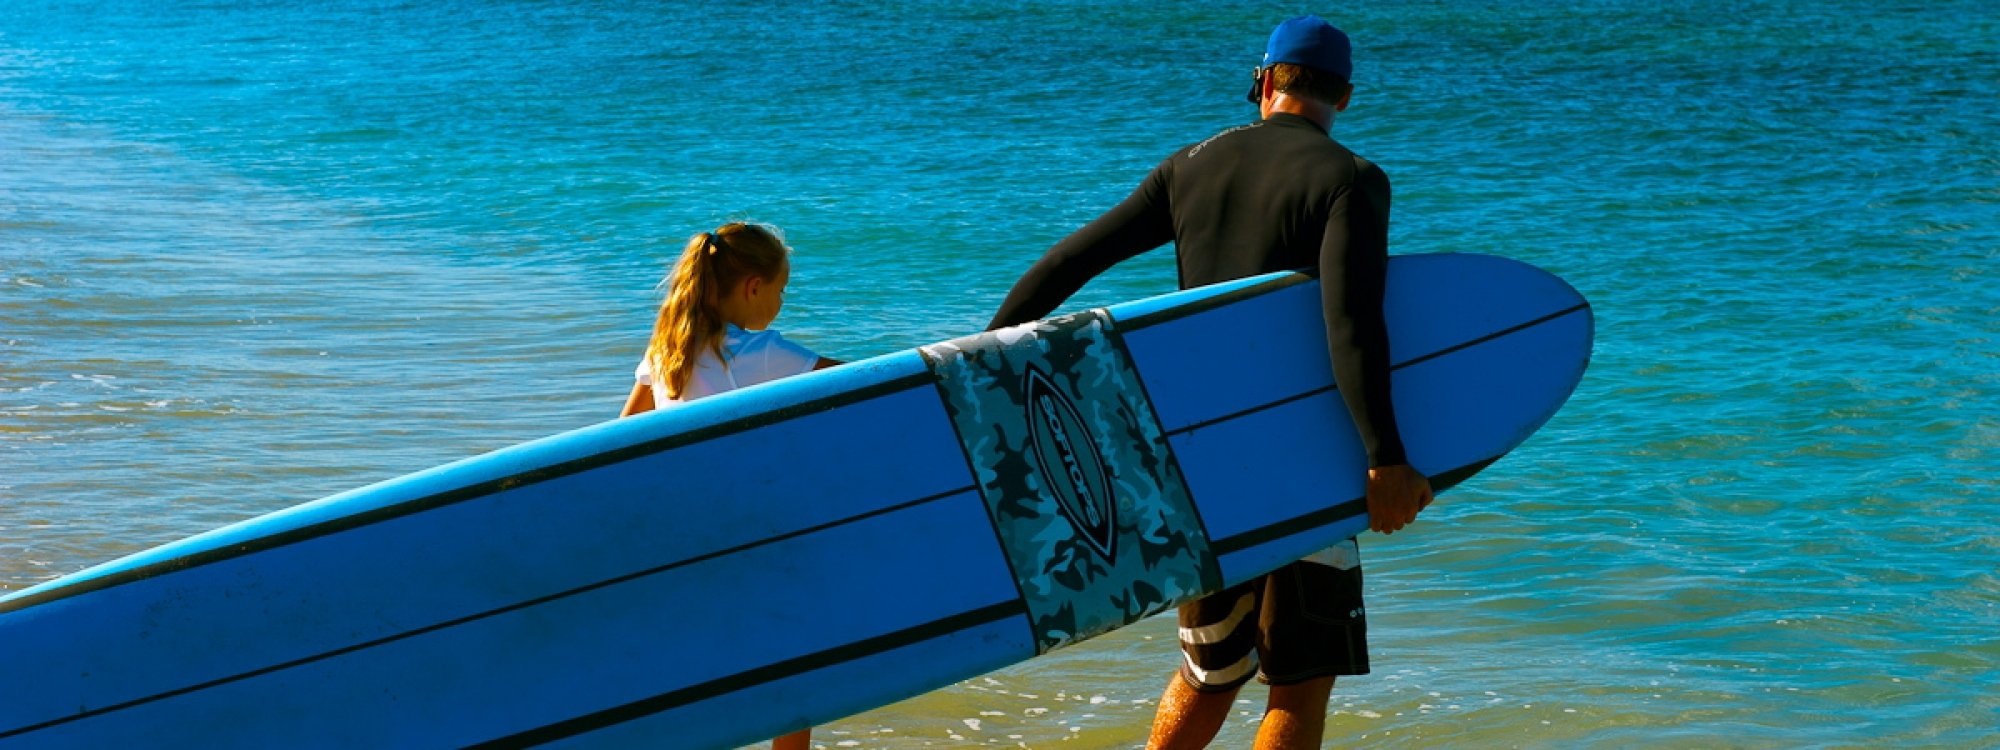 SSM Encourages All Newcomers To Join The Fun:  Here Nichole,  Who Is 9 Years Old And Autistic, Enters The Water With Brian For Her First Surfing Experience.